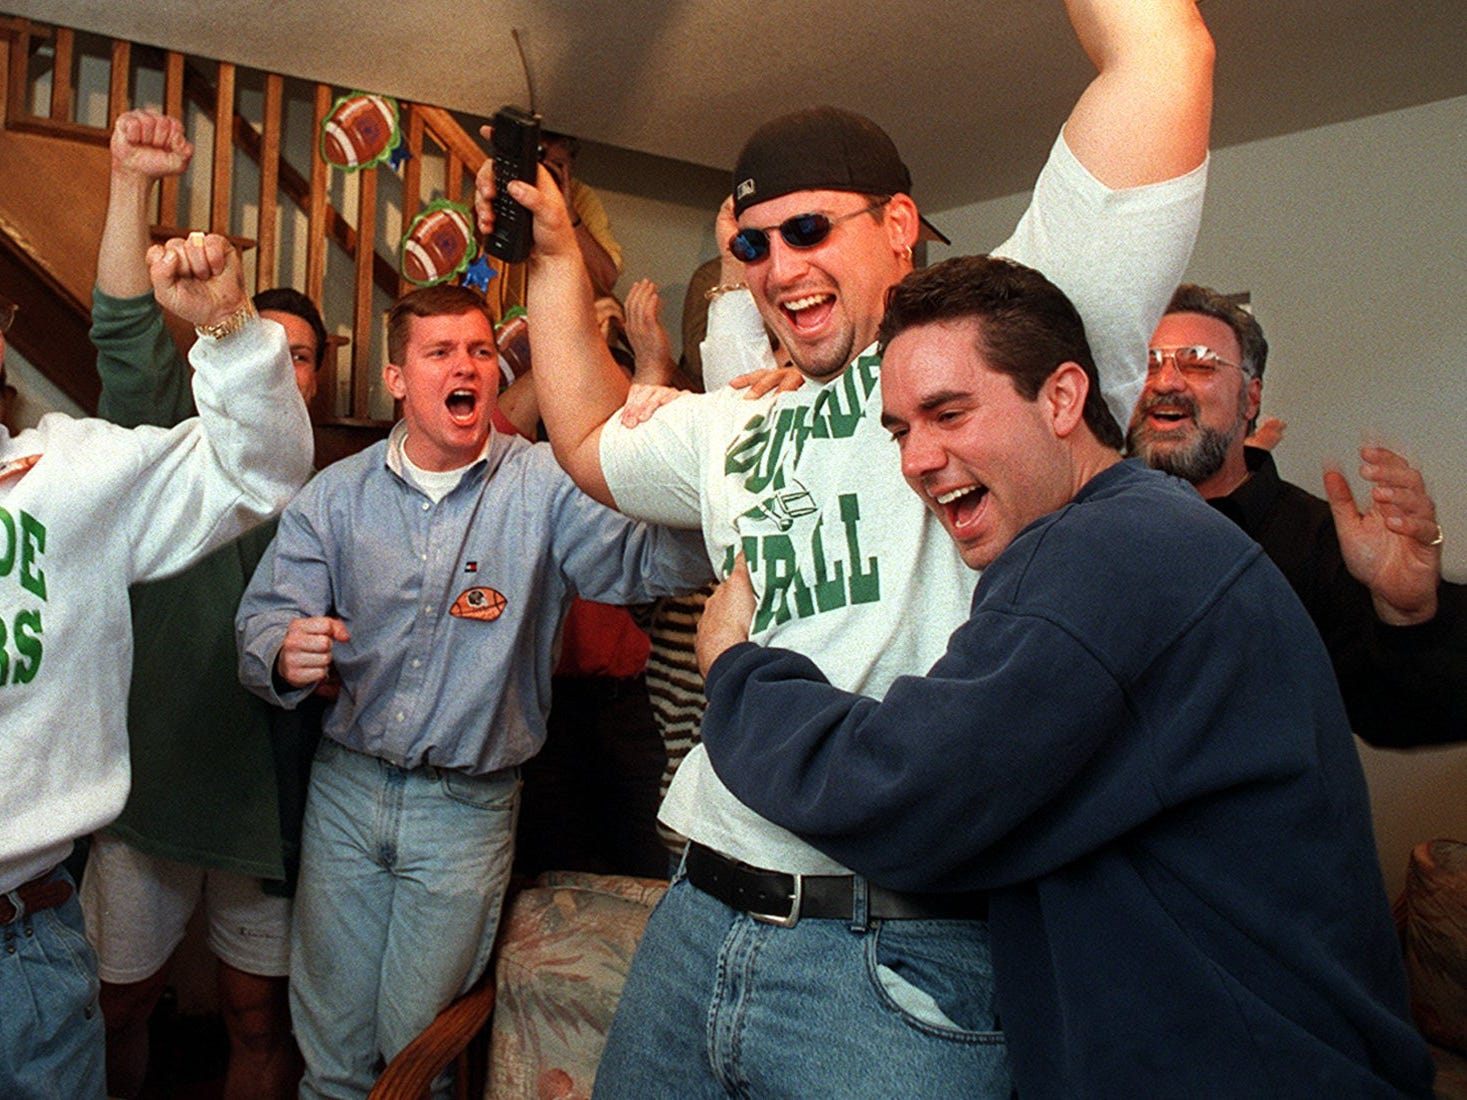 Ross Verba, phone in hand, celebrates with dozens of friends and family as news of his selection in the 1997 NFL Draft was announced on TV. Verba, a former Iowa Hawkeye, was taken 30th ovearll by the Green Bay Packers. He was hugged by his cousin, John Fucaloro. On his left is cousin Steve Fucaloro.